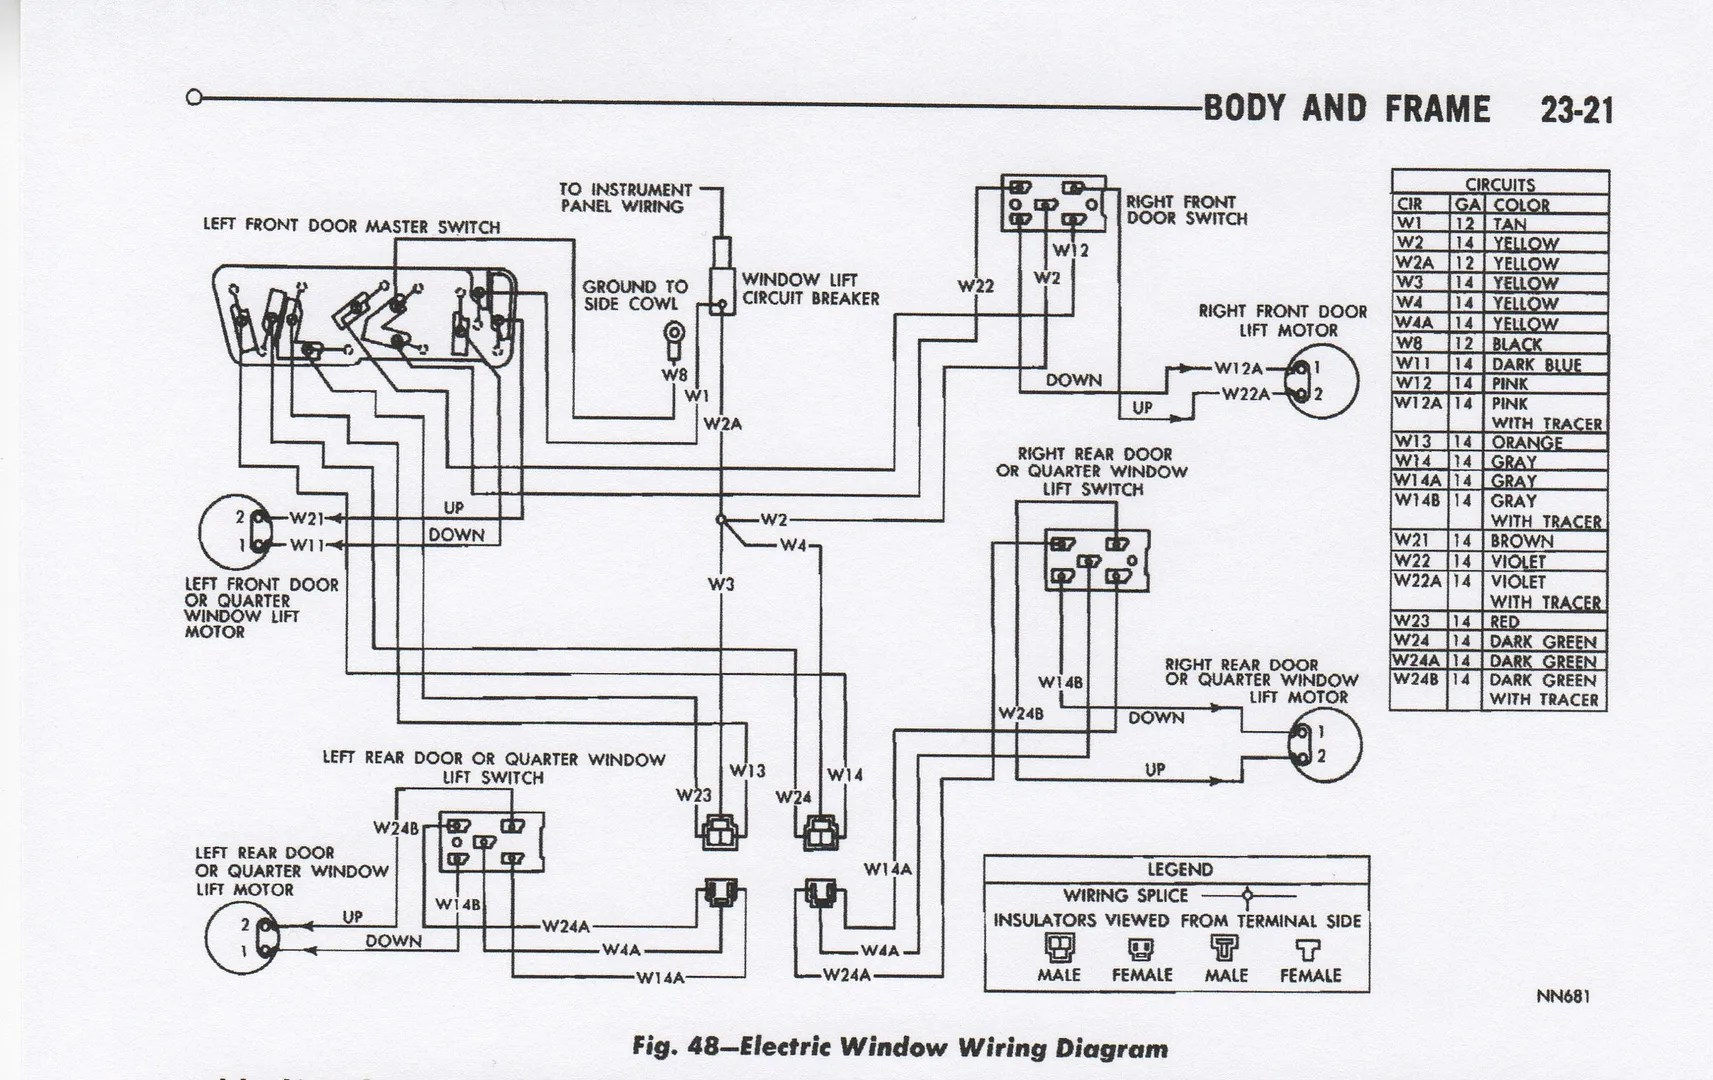 Wiring Diagram For 1967 Dodge Coronet Wiring Diagram For